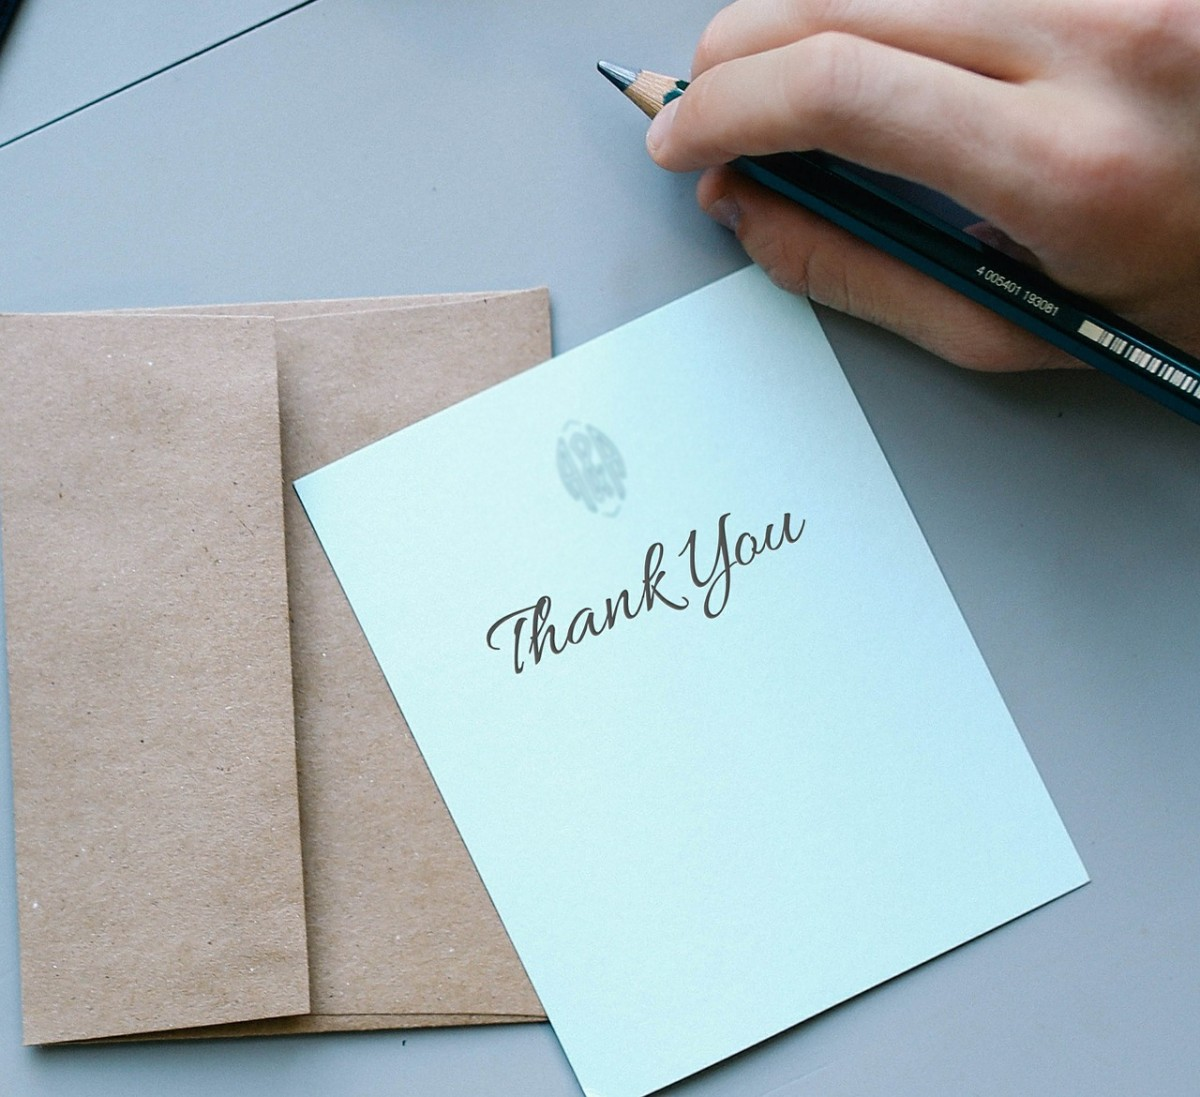 How to Write a Personal Thank You Note